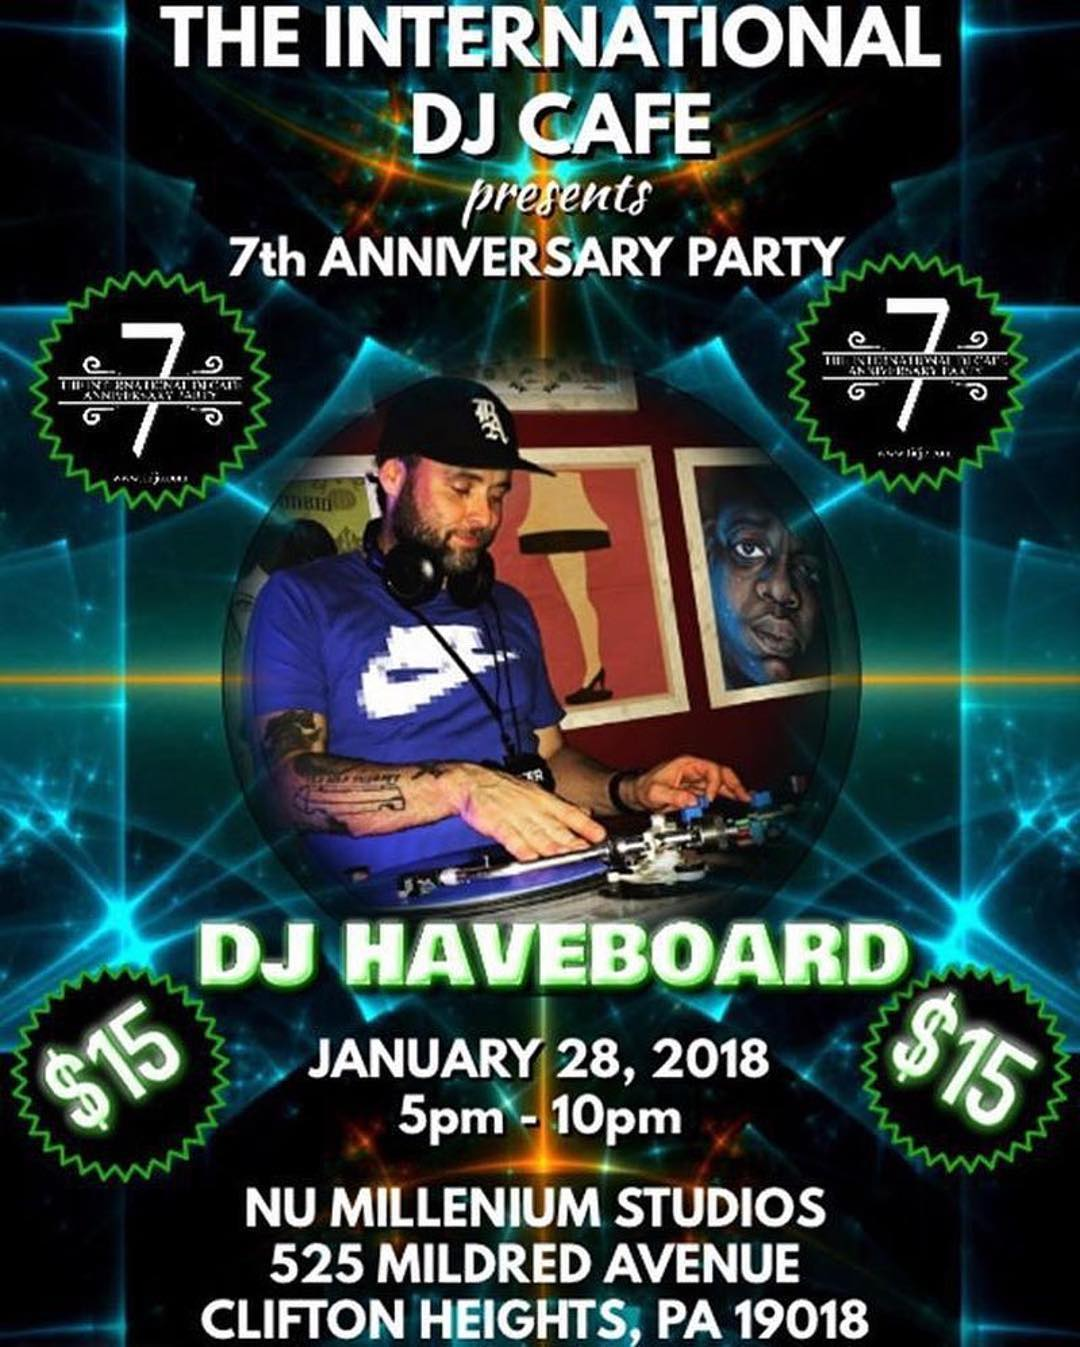 @haveboard ・・・ I'm working on a hot 15 minute set to showcase this Sunday at the @internationaldjcafe's 7 year anniversary party @numstudios alongside a great list of heavy hitting DJs and Artists!. Check the link in the bio, my previous post, or djhaveboard.com for more details! Come check it out, the event is from 5 to 10, $15